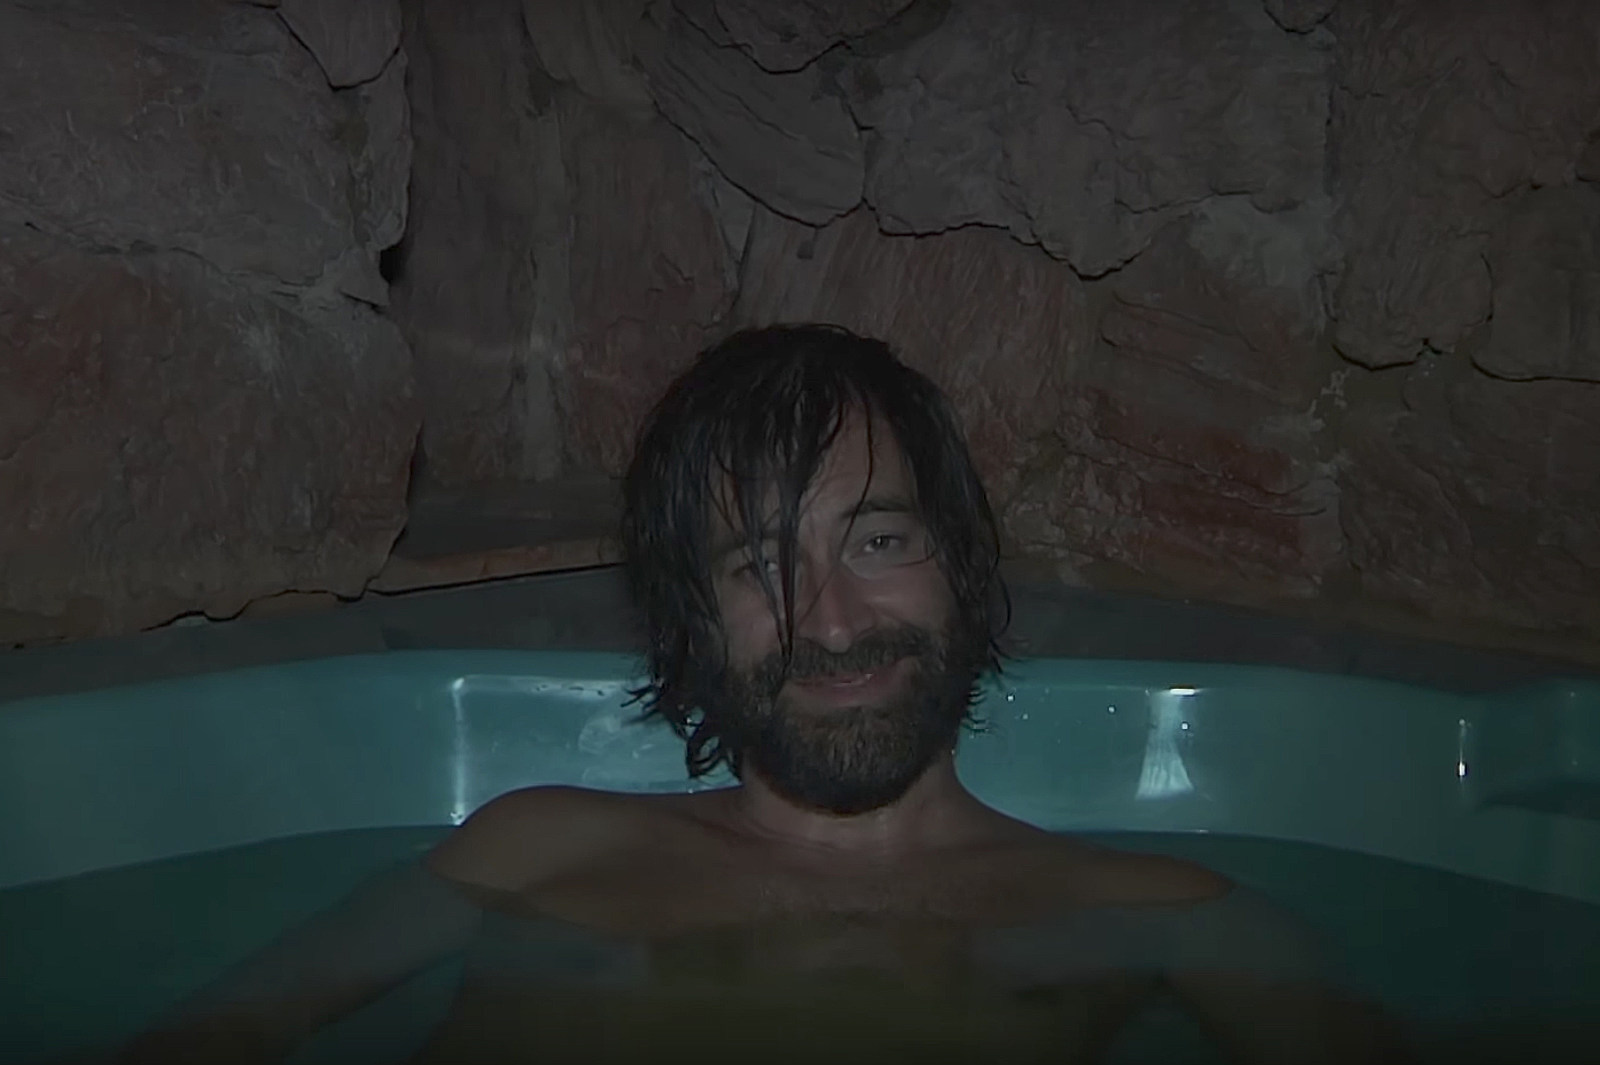 Creep-2-Mark-Duplass.jpg